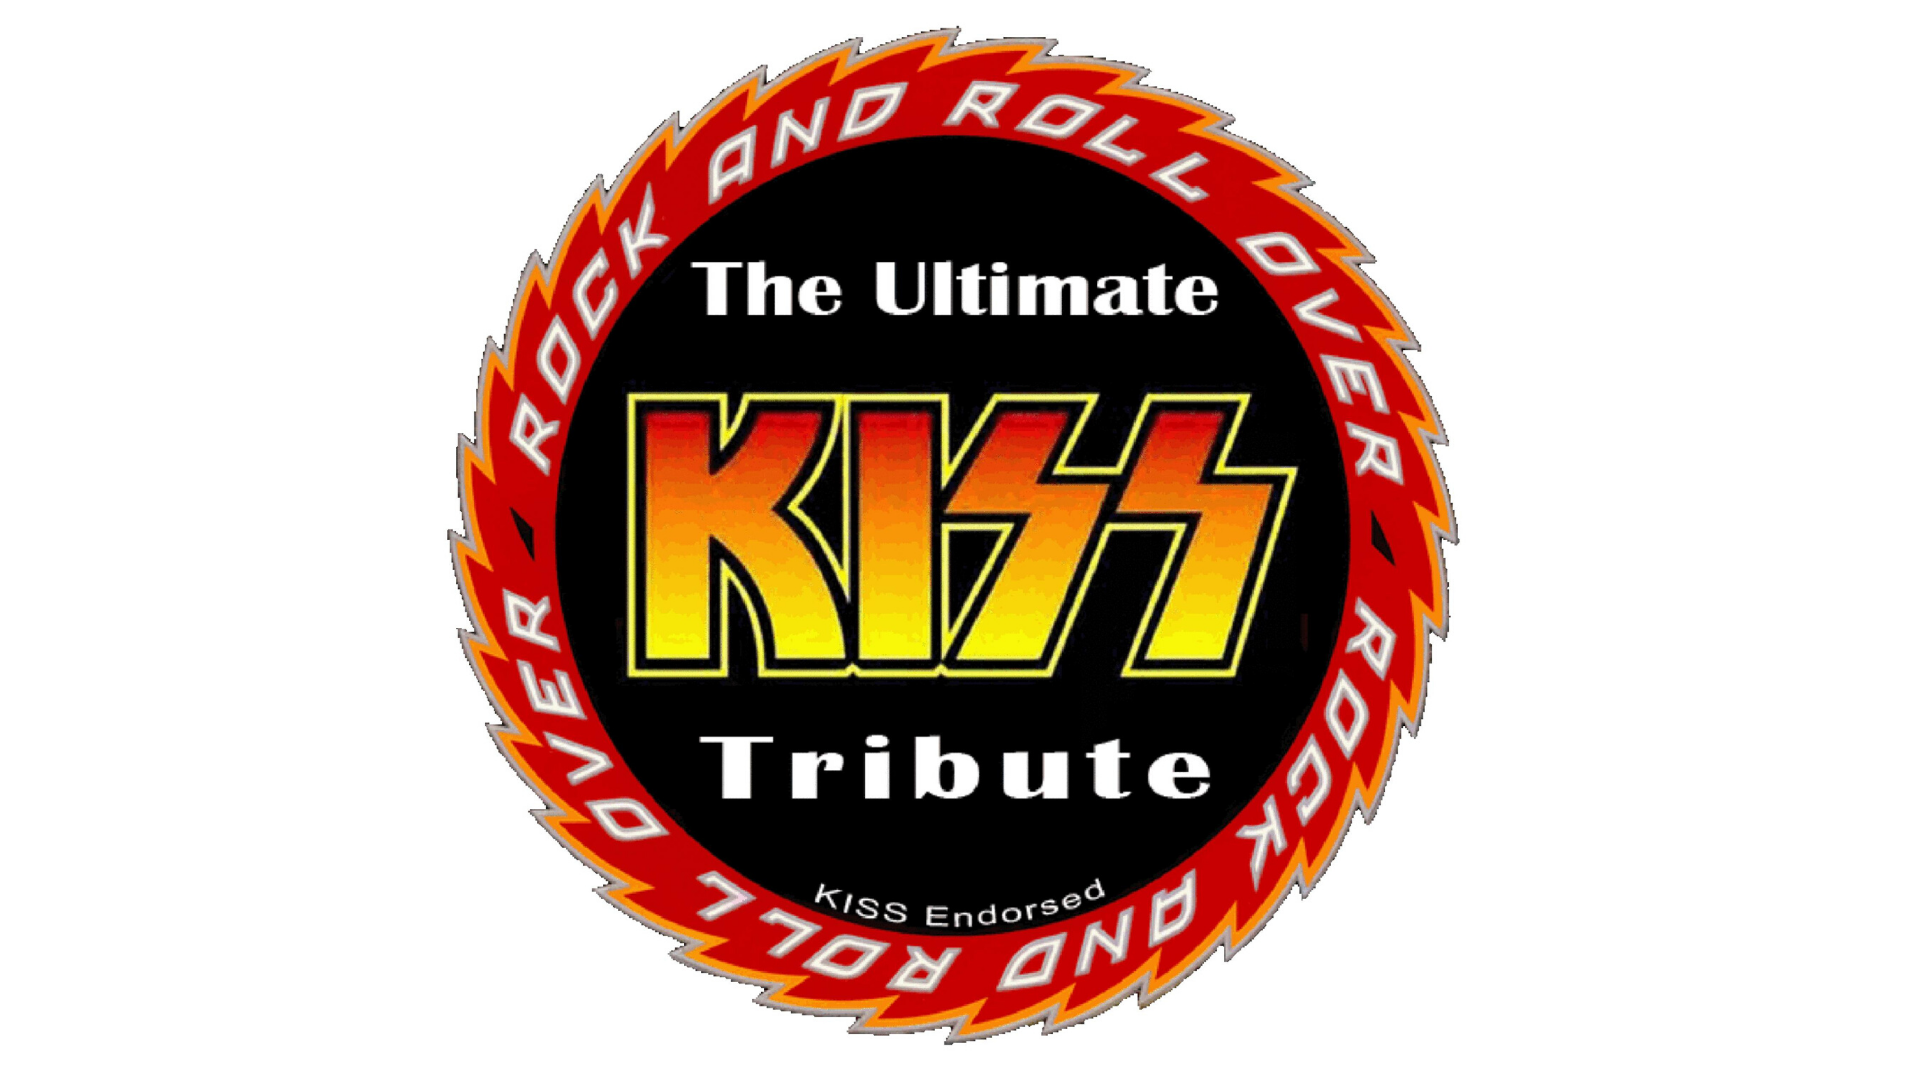 Promo image of Rock and Roll Over (The Ultimate KISS Tribute)